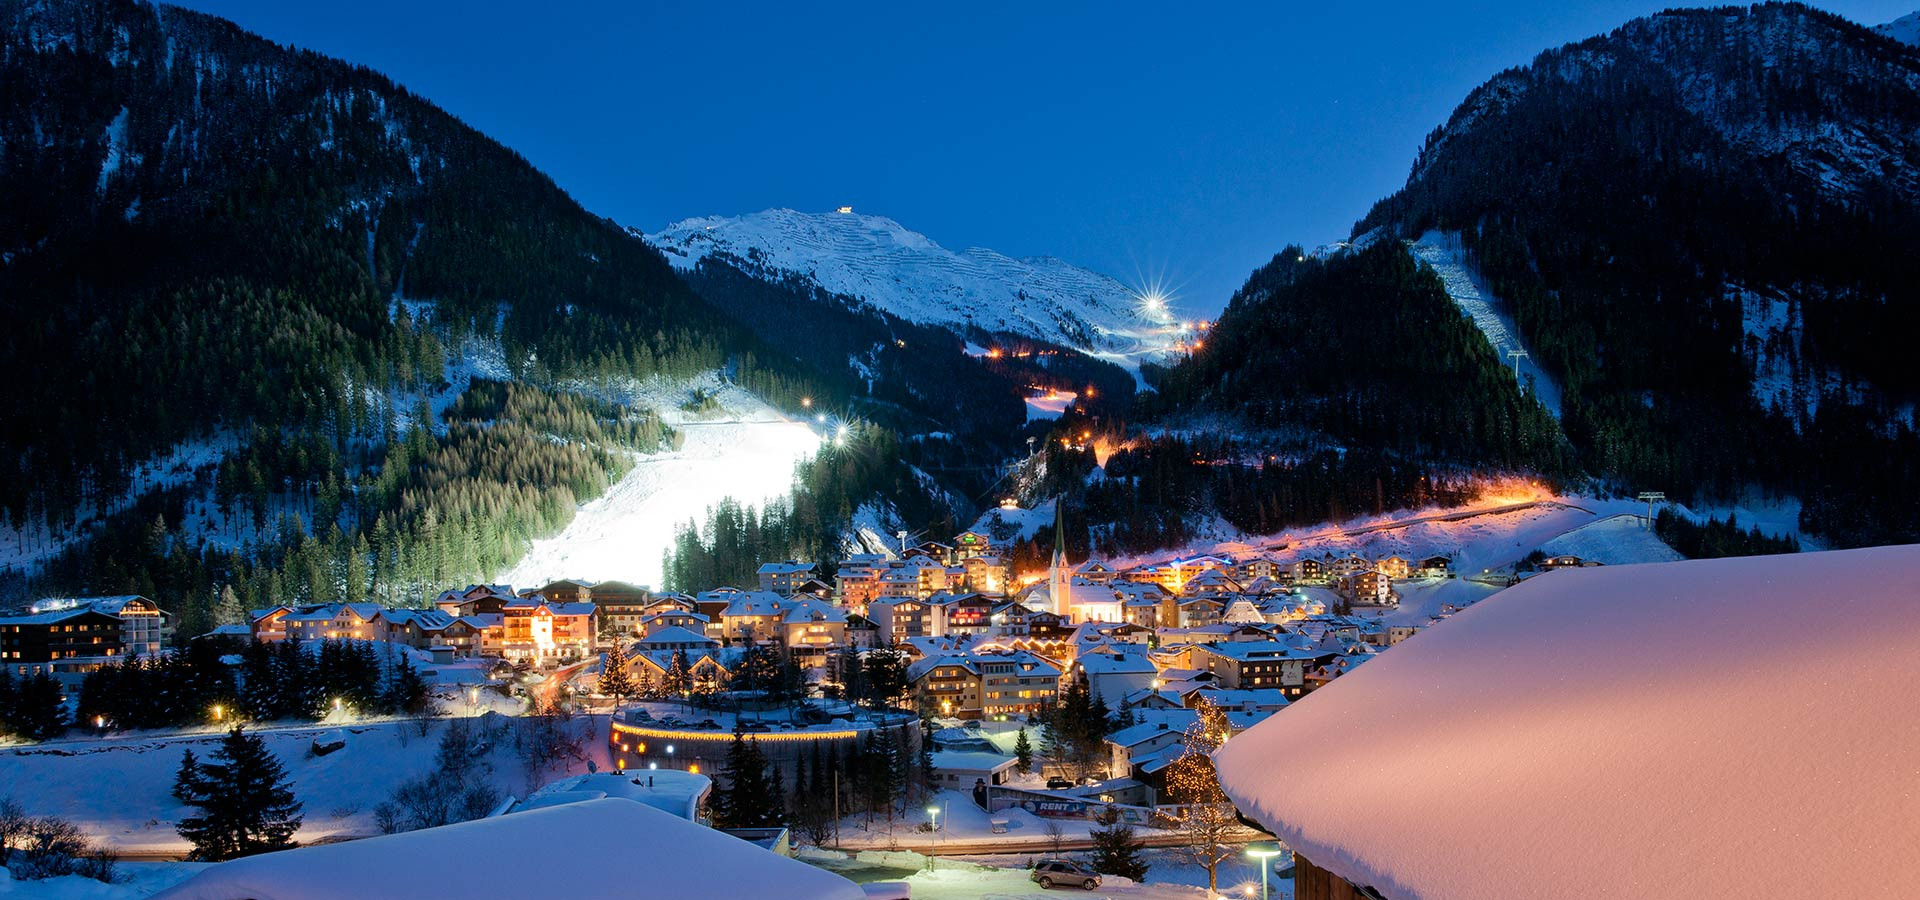 Ischgl enthrals its visitors  from morning till evening and all through the night